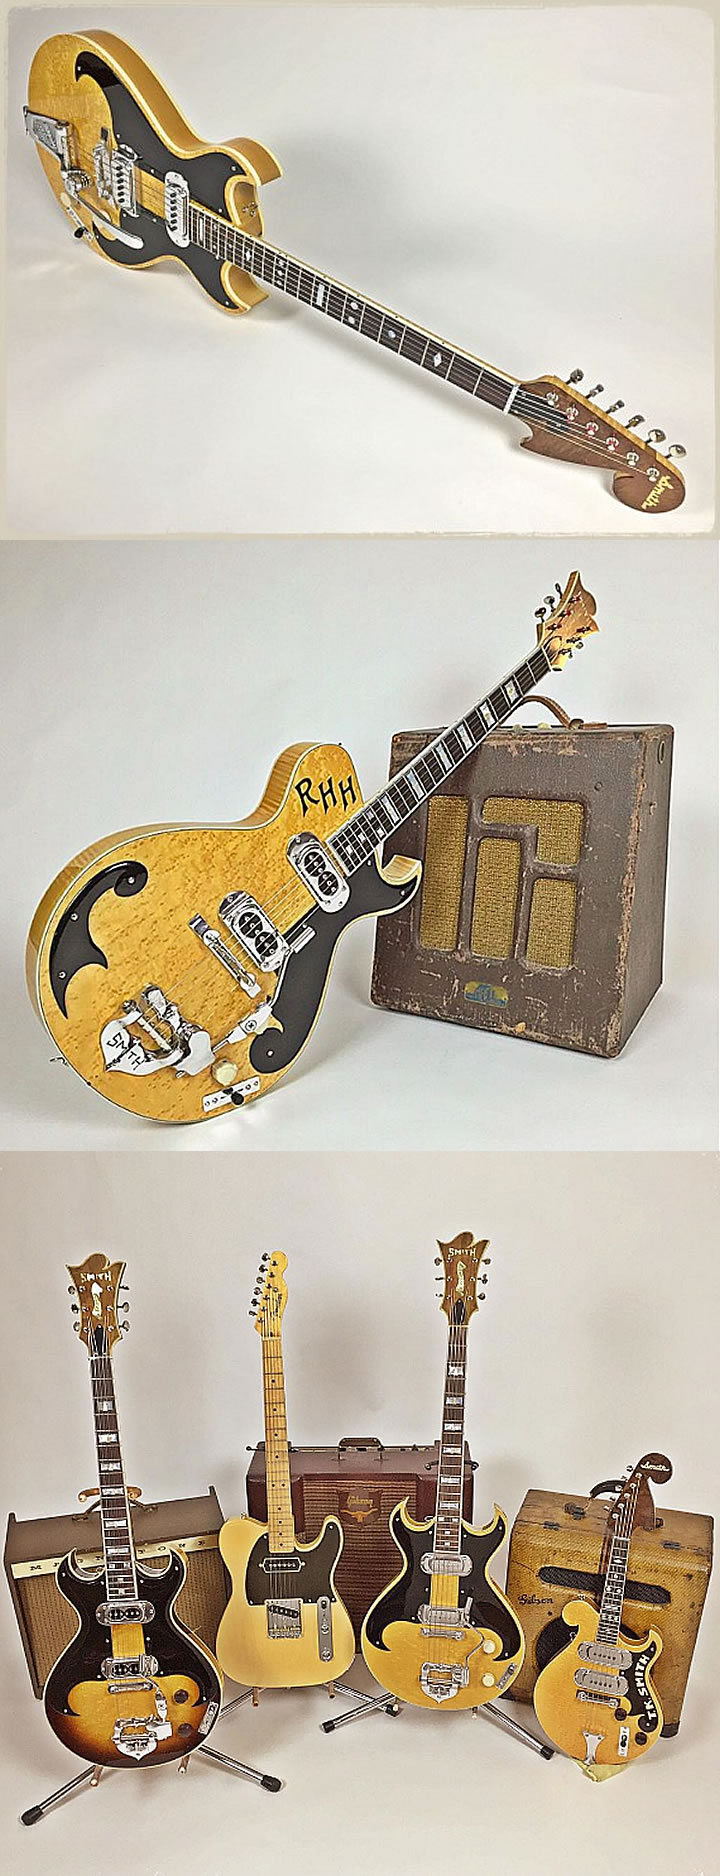 TKSmith CUSTOM GUITAR